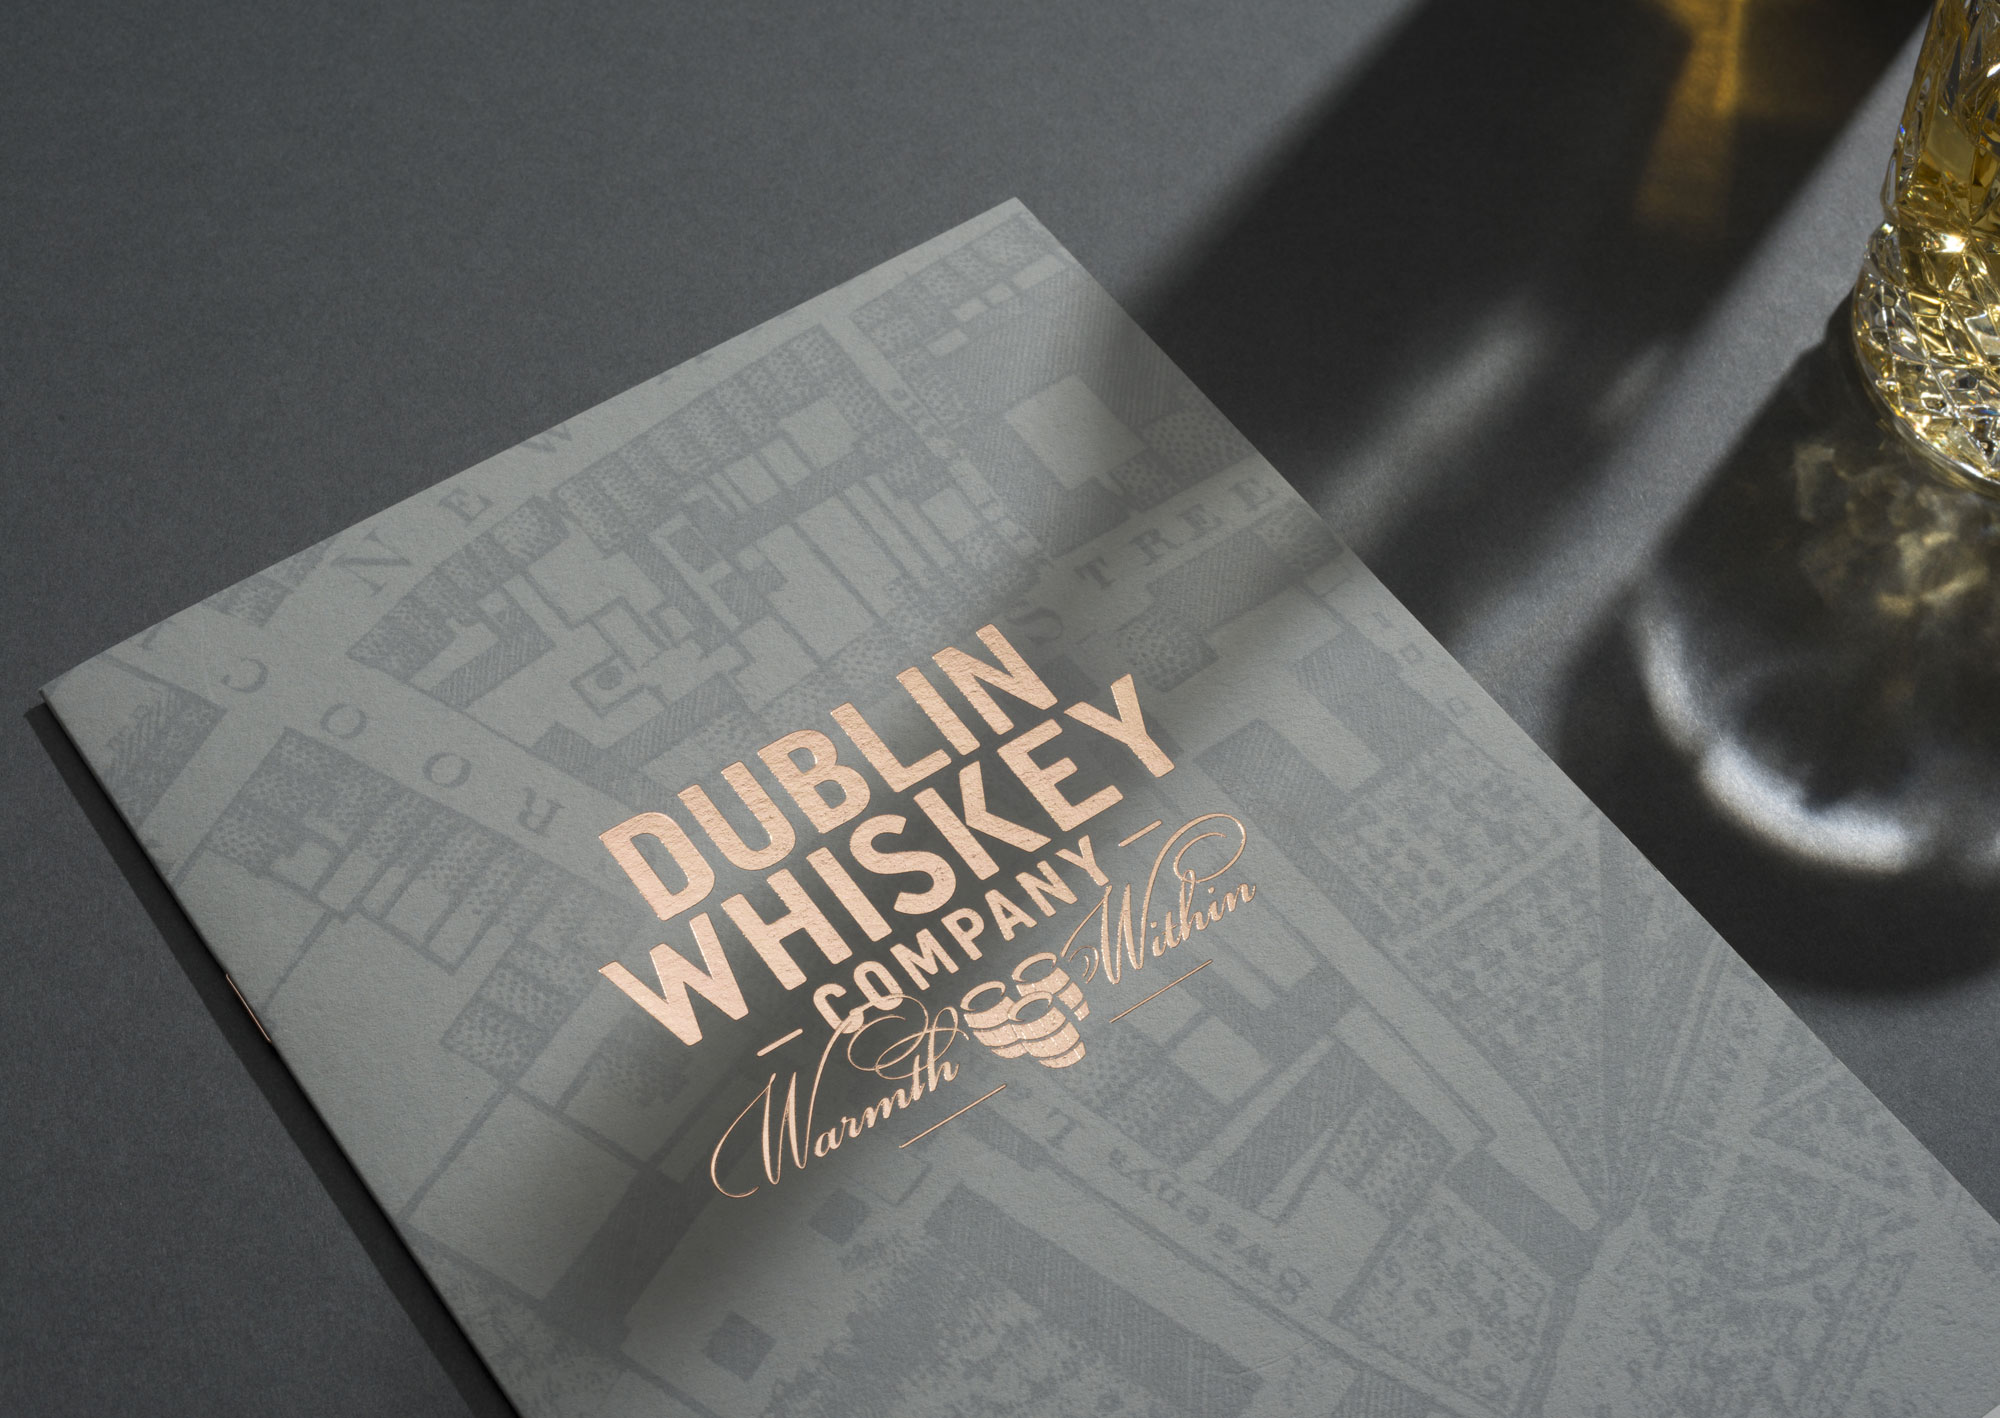 Cover image: Dublin Whiskey Company